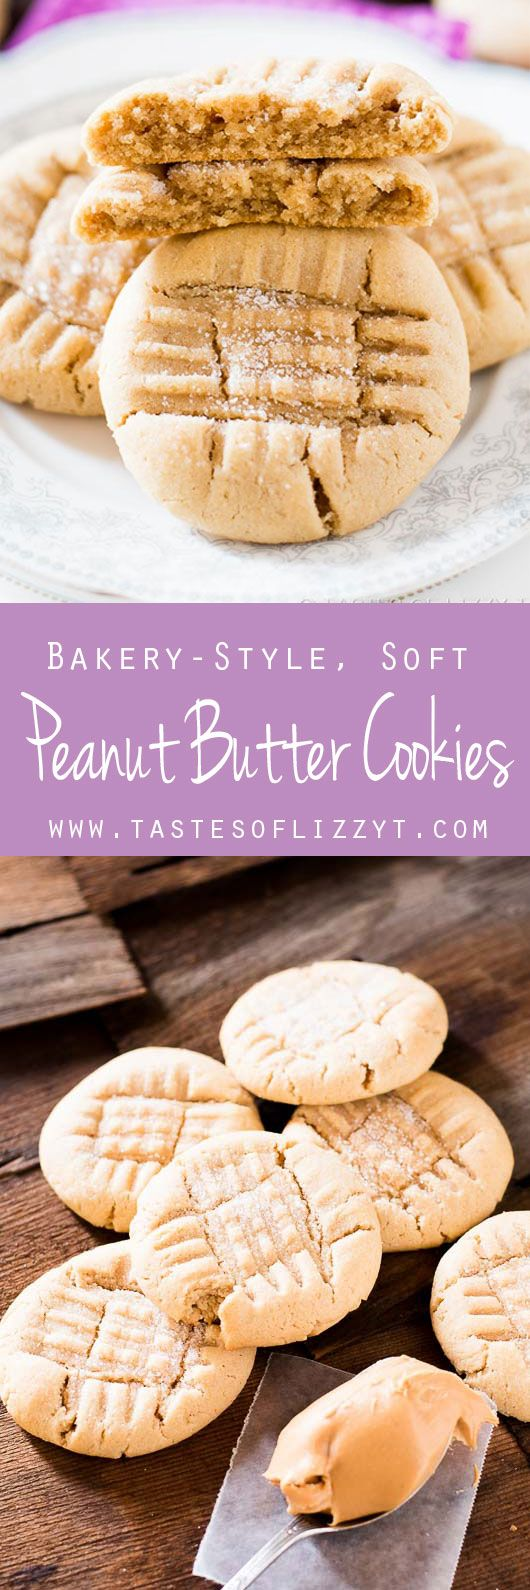 Bakery Style Soft Peanut Butter Cookies Everyone needs a classic, old-fashioned peanut butter cookie recipe. Make bakery-style, soft peanut butter cookies at home with this simple recipe.